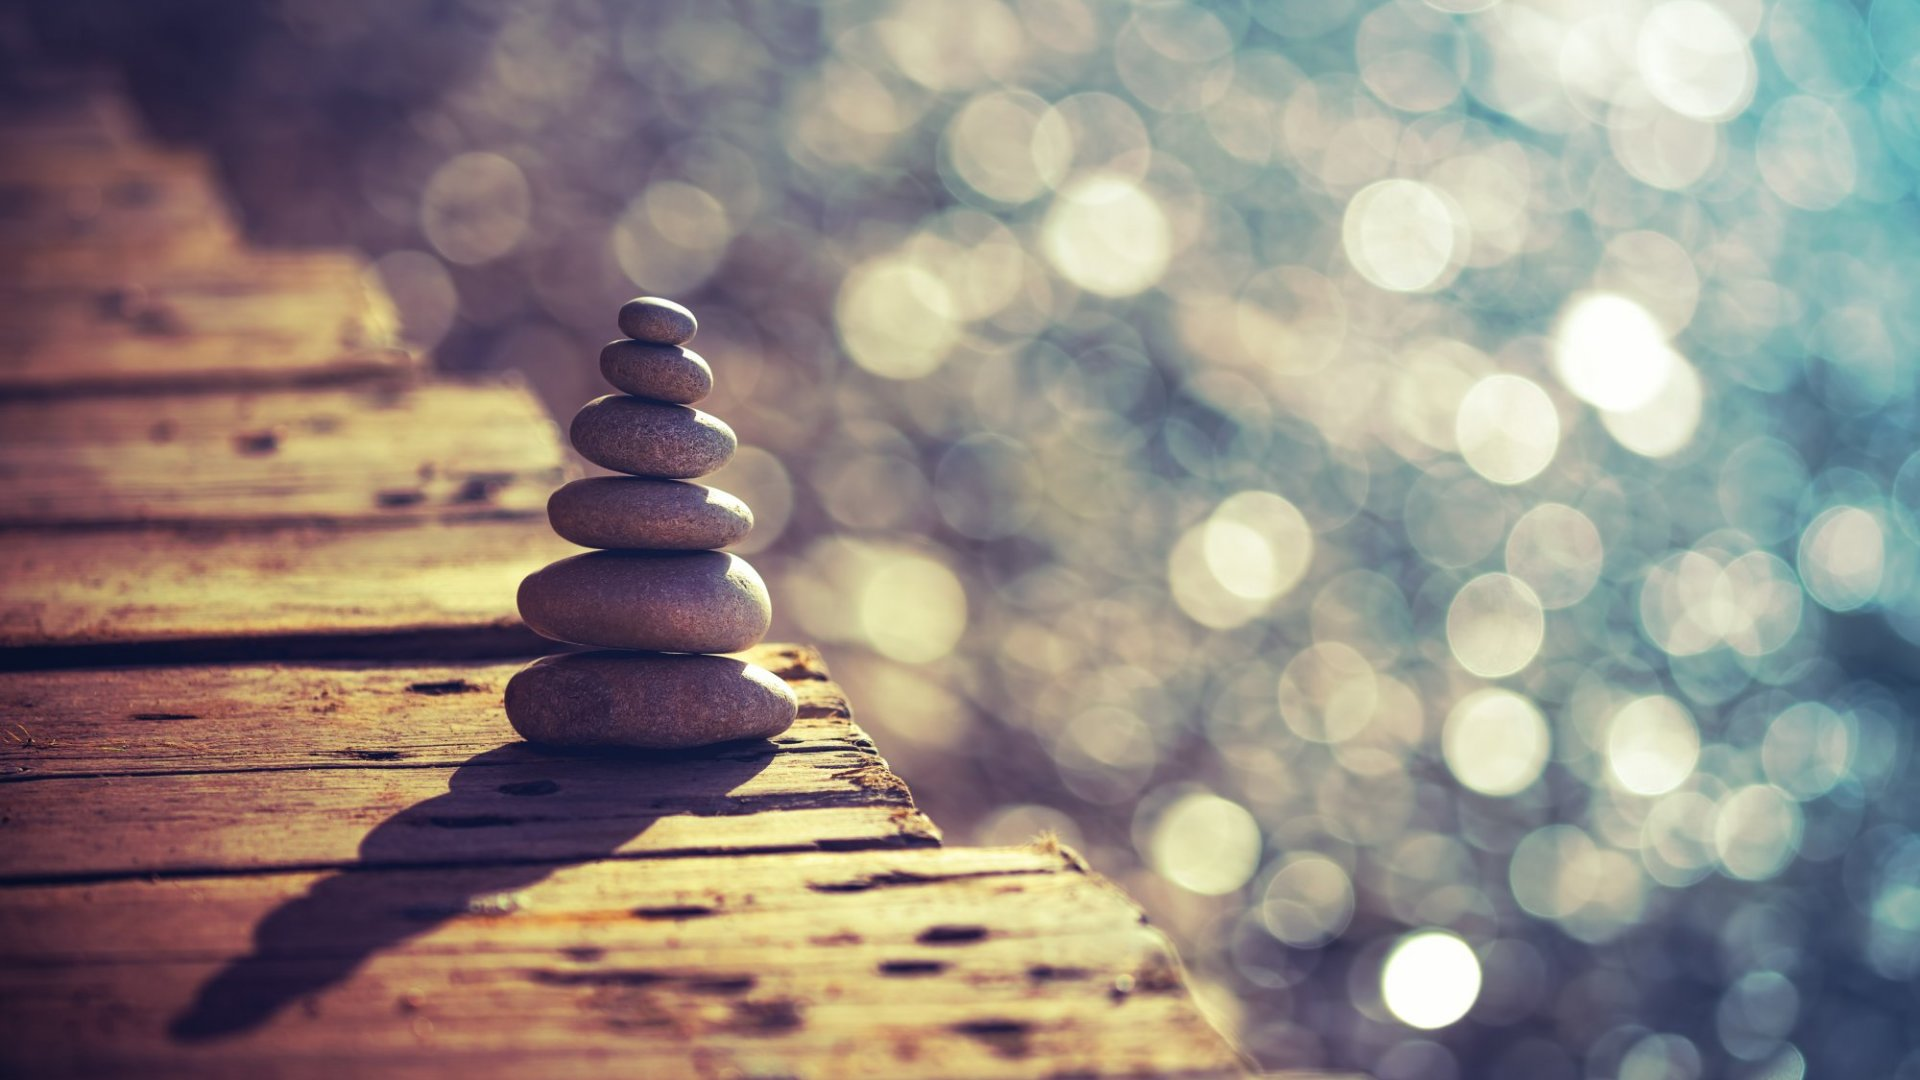 These 3 Mindfulness Practices Can Help You Be a More Focused Leader